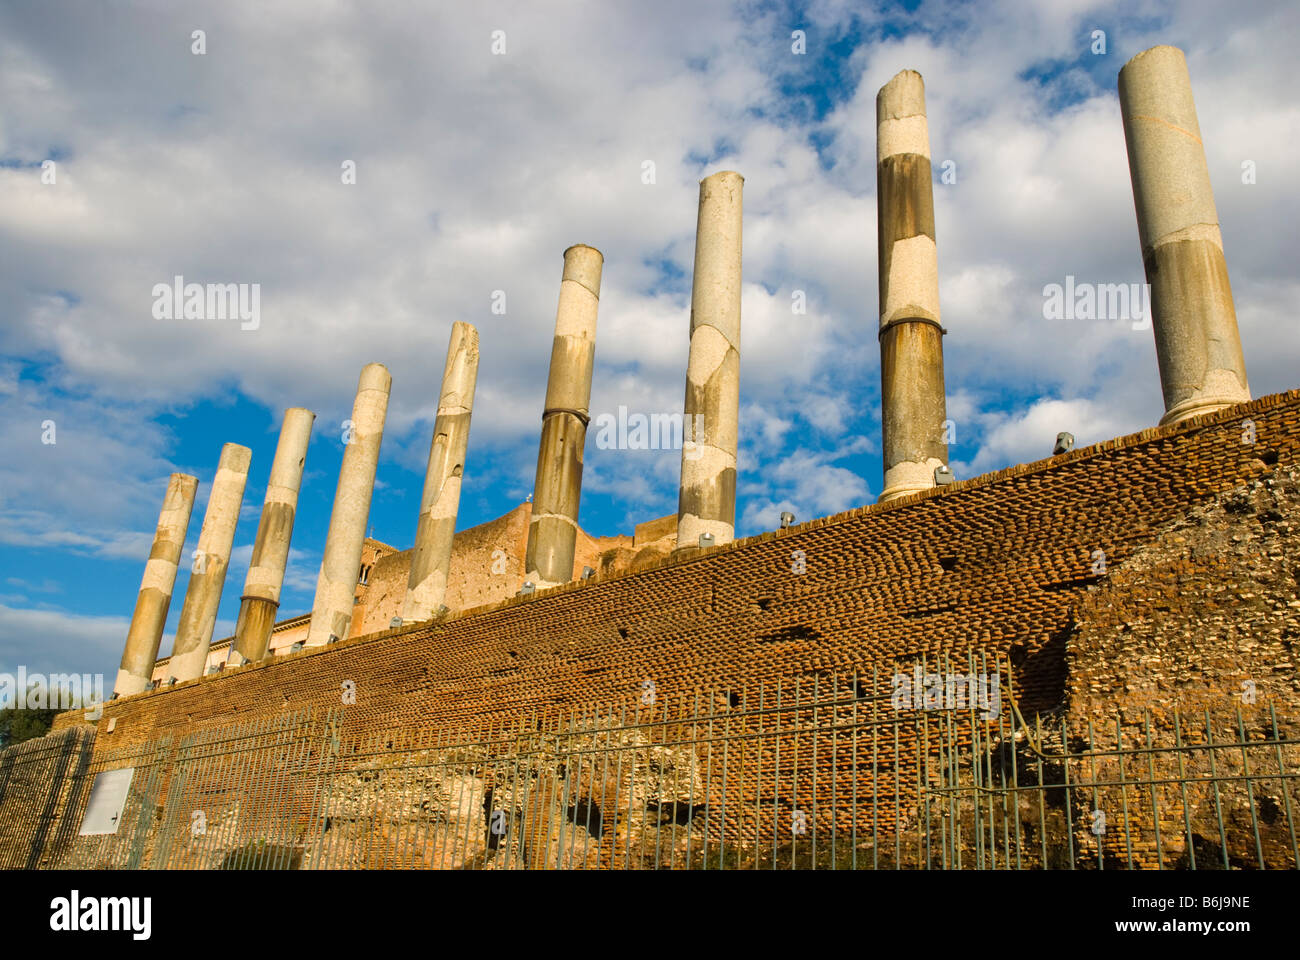 Ruins at Foro Romano the Roman Forum in Centro storico the historical centre of Rome Italy Europe - Stock Image